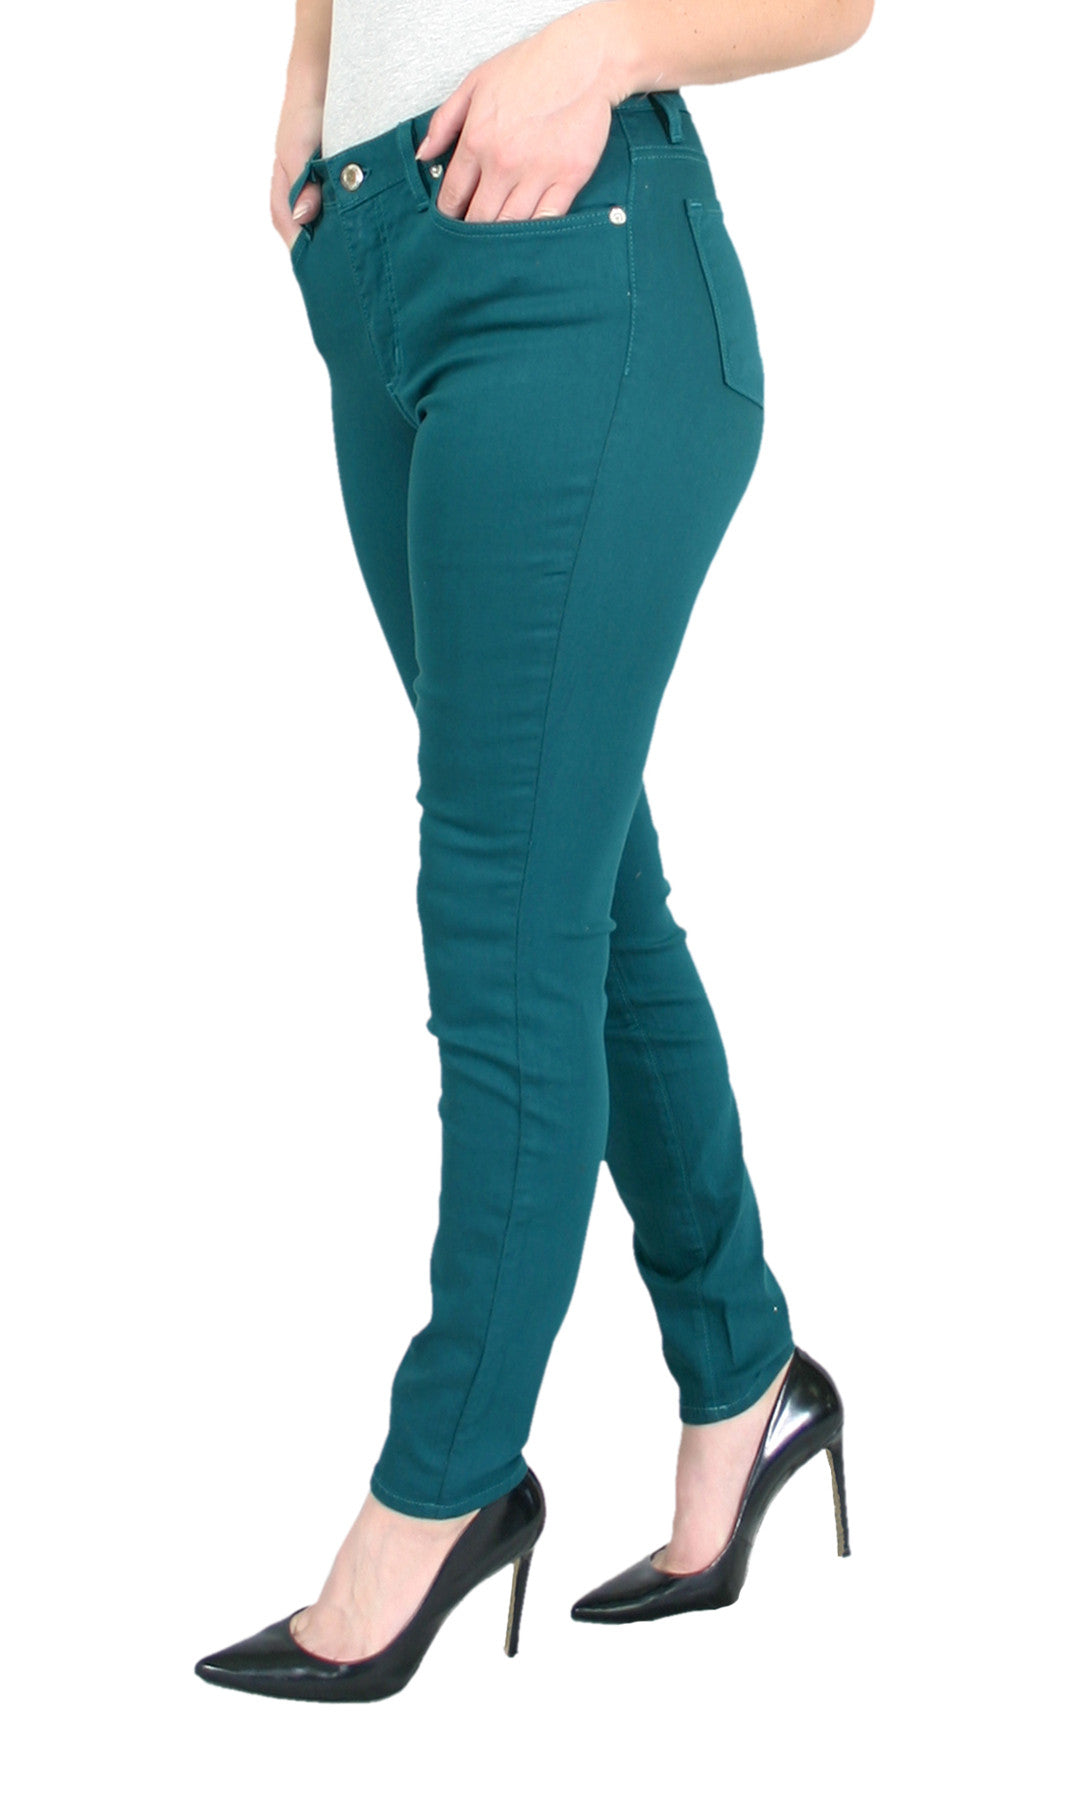 Trueslim Jeans Teal Jeggings